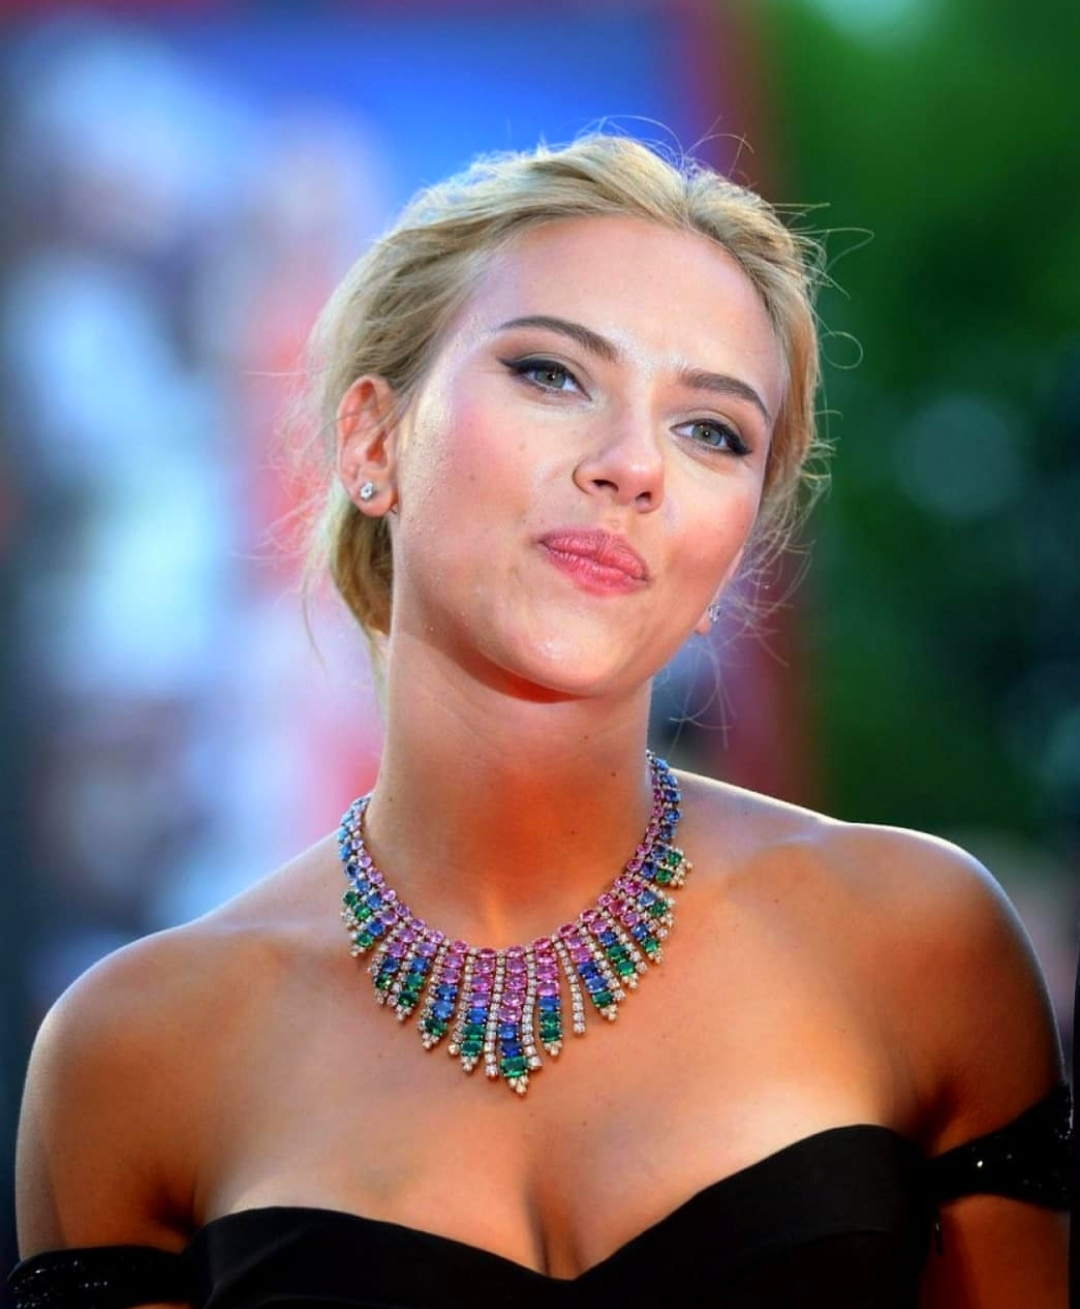 Beautiful And Sexy Scarlett Johansson Photos 2020 - Scarlett Johansson Photos And Movies List